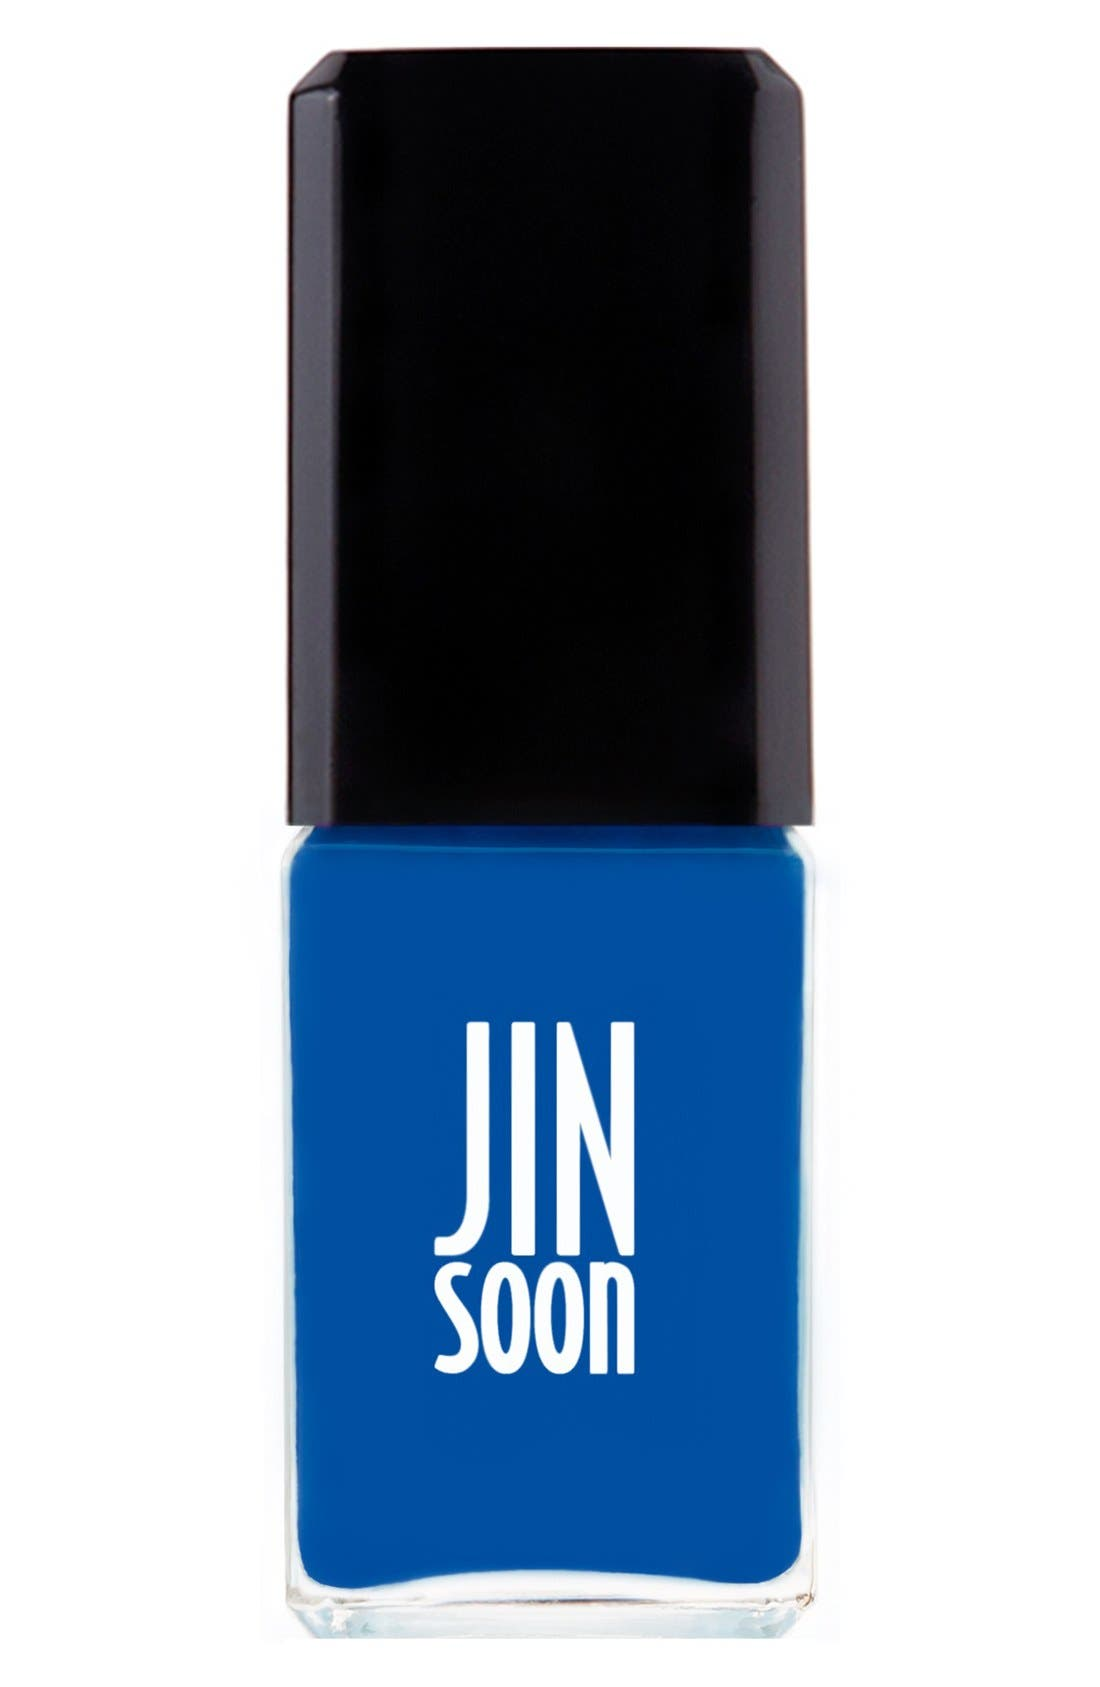 JINsoon 'Cool Blue' Nail Lacquer